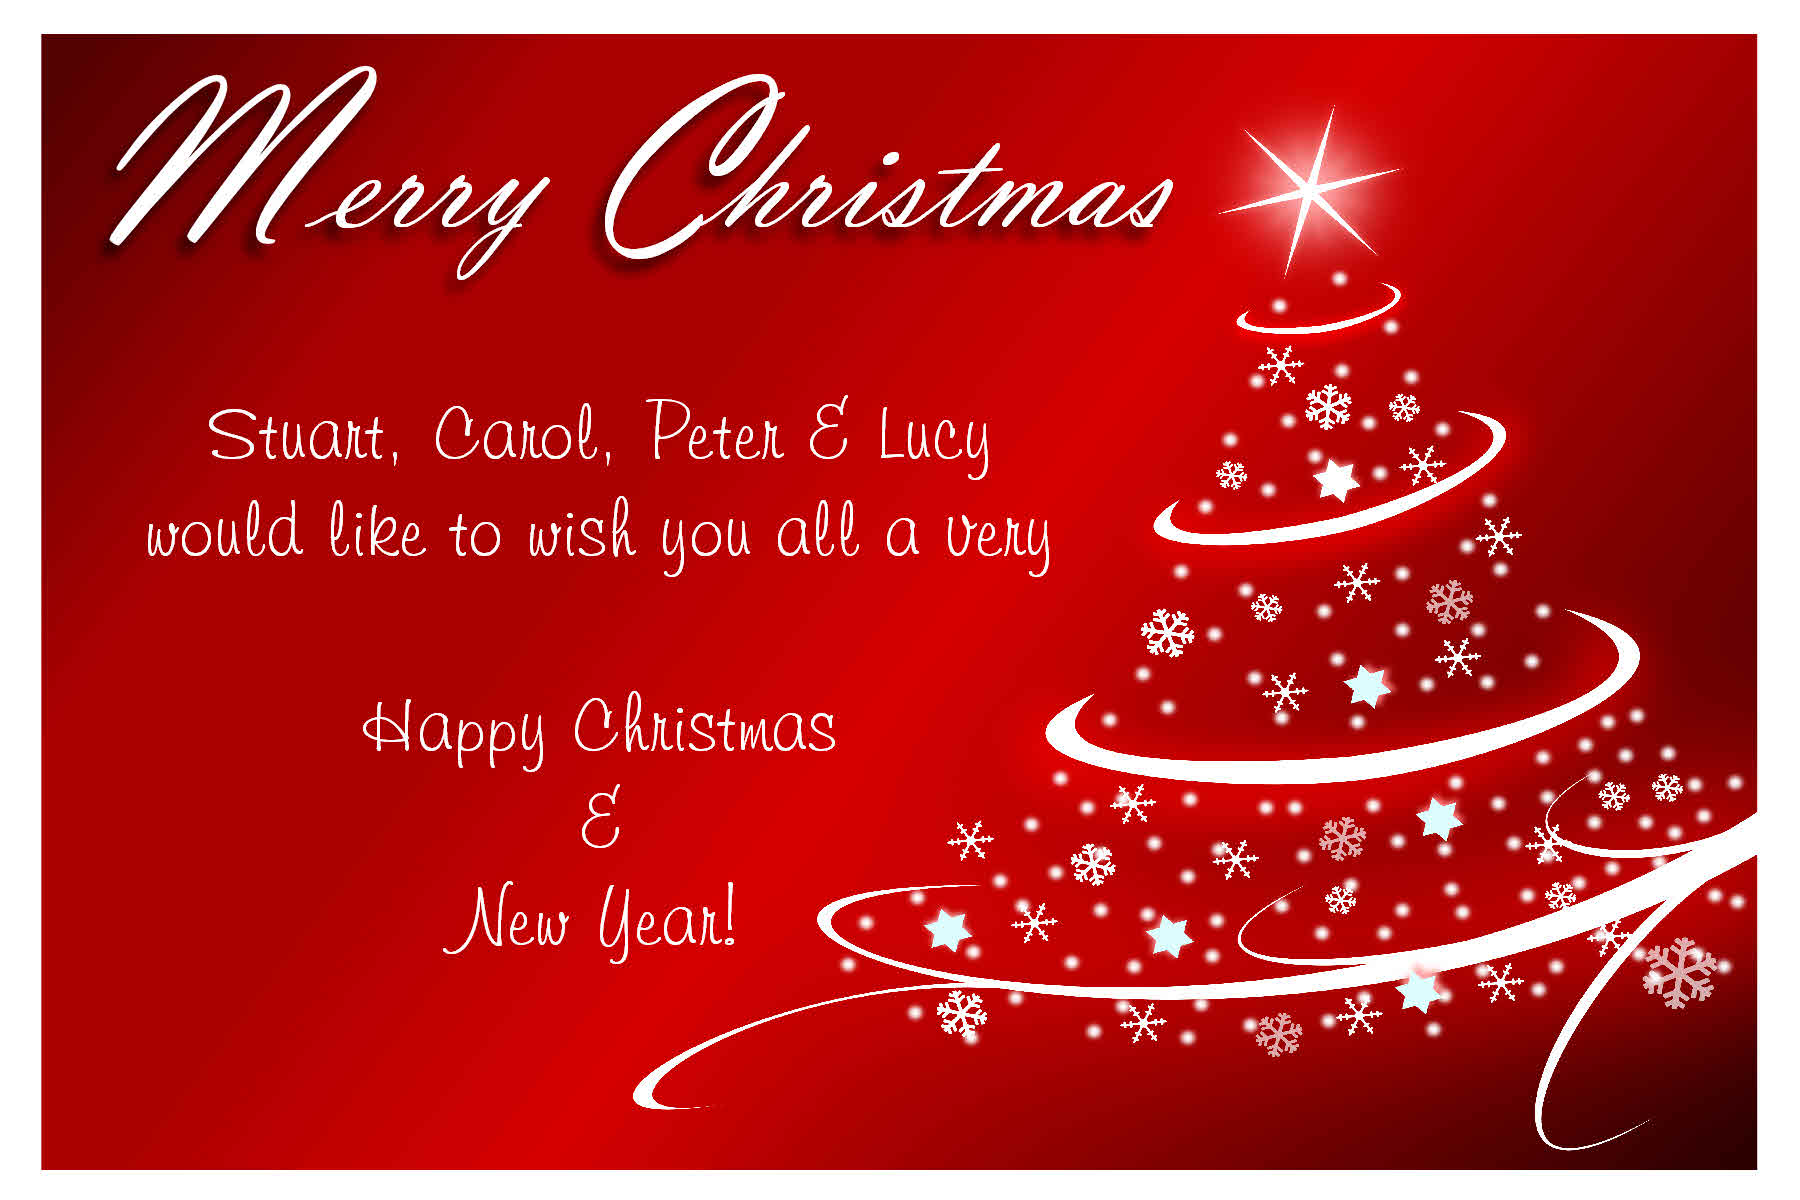 Christmas Card Trends ~ The Best Collection of Quotes